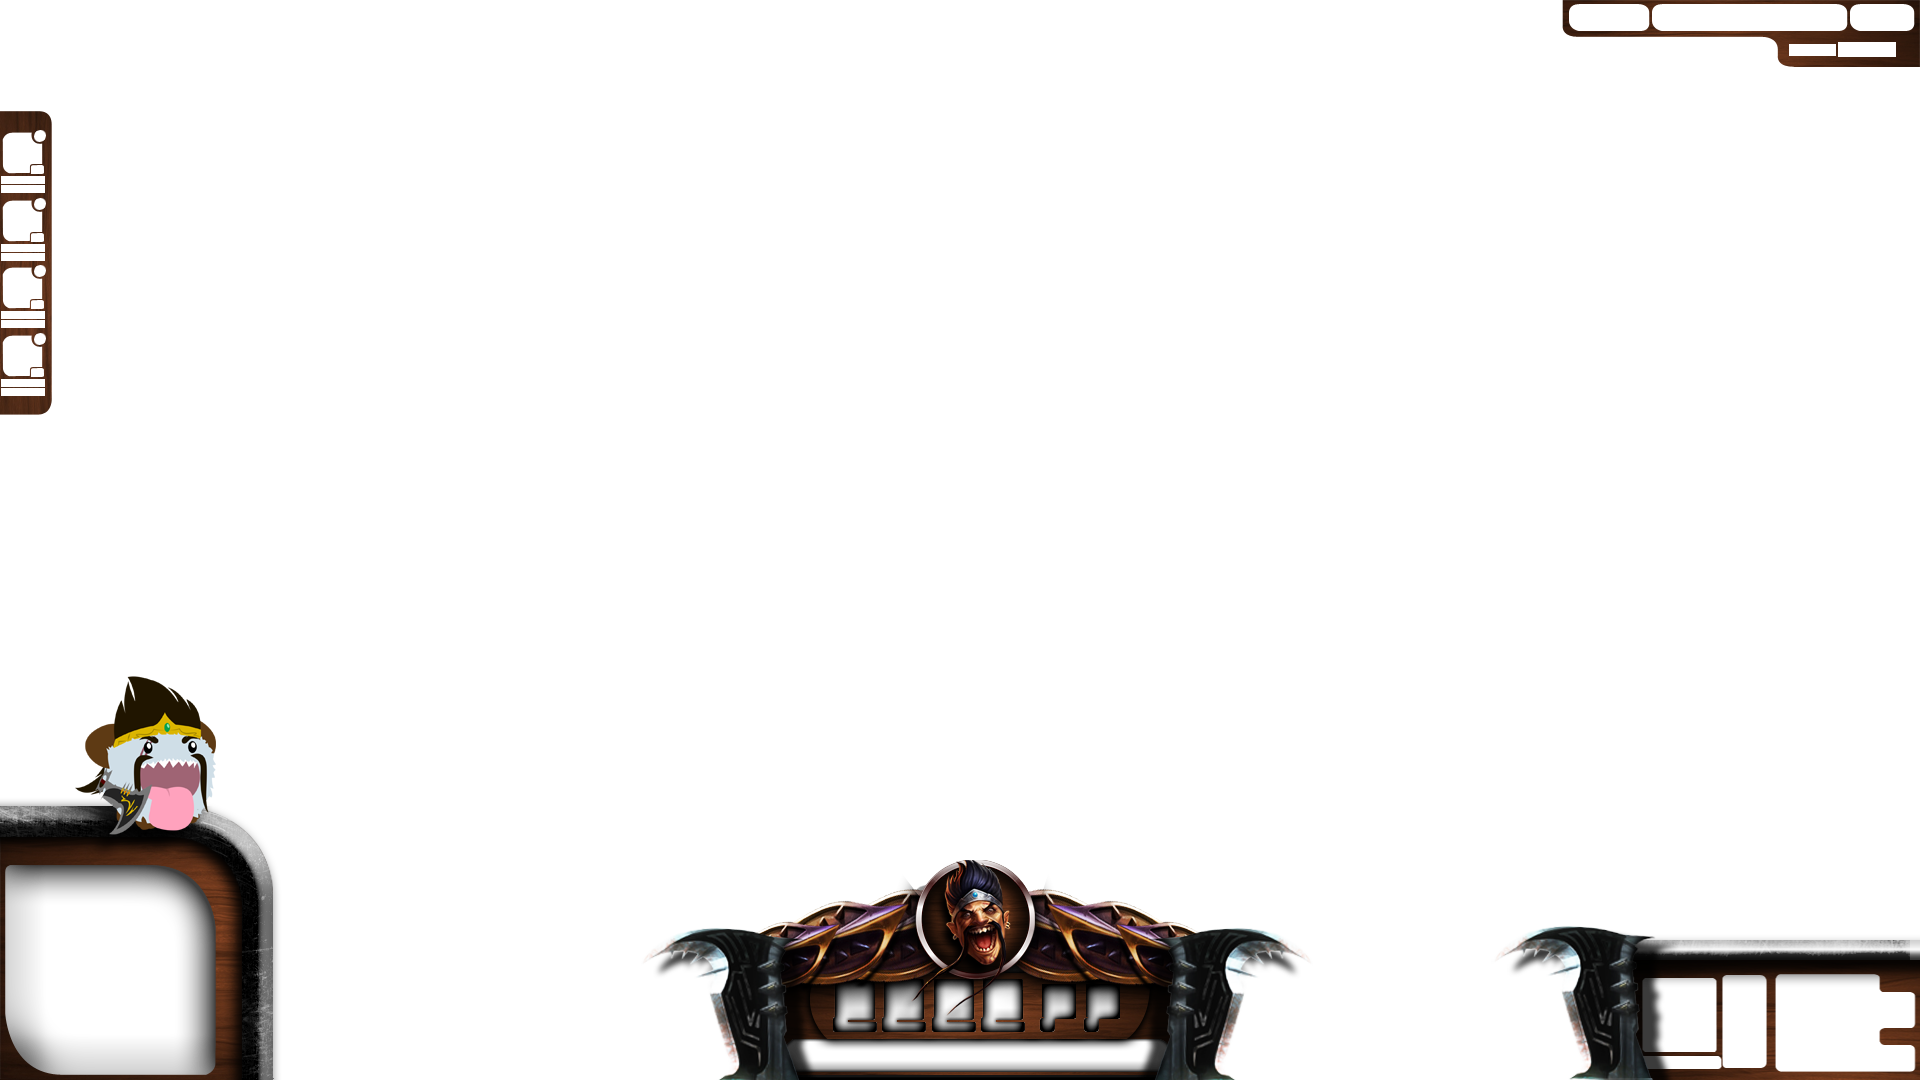 HD Draven Stream Overlay Free To Use Png Jokes Photoshop.